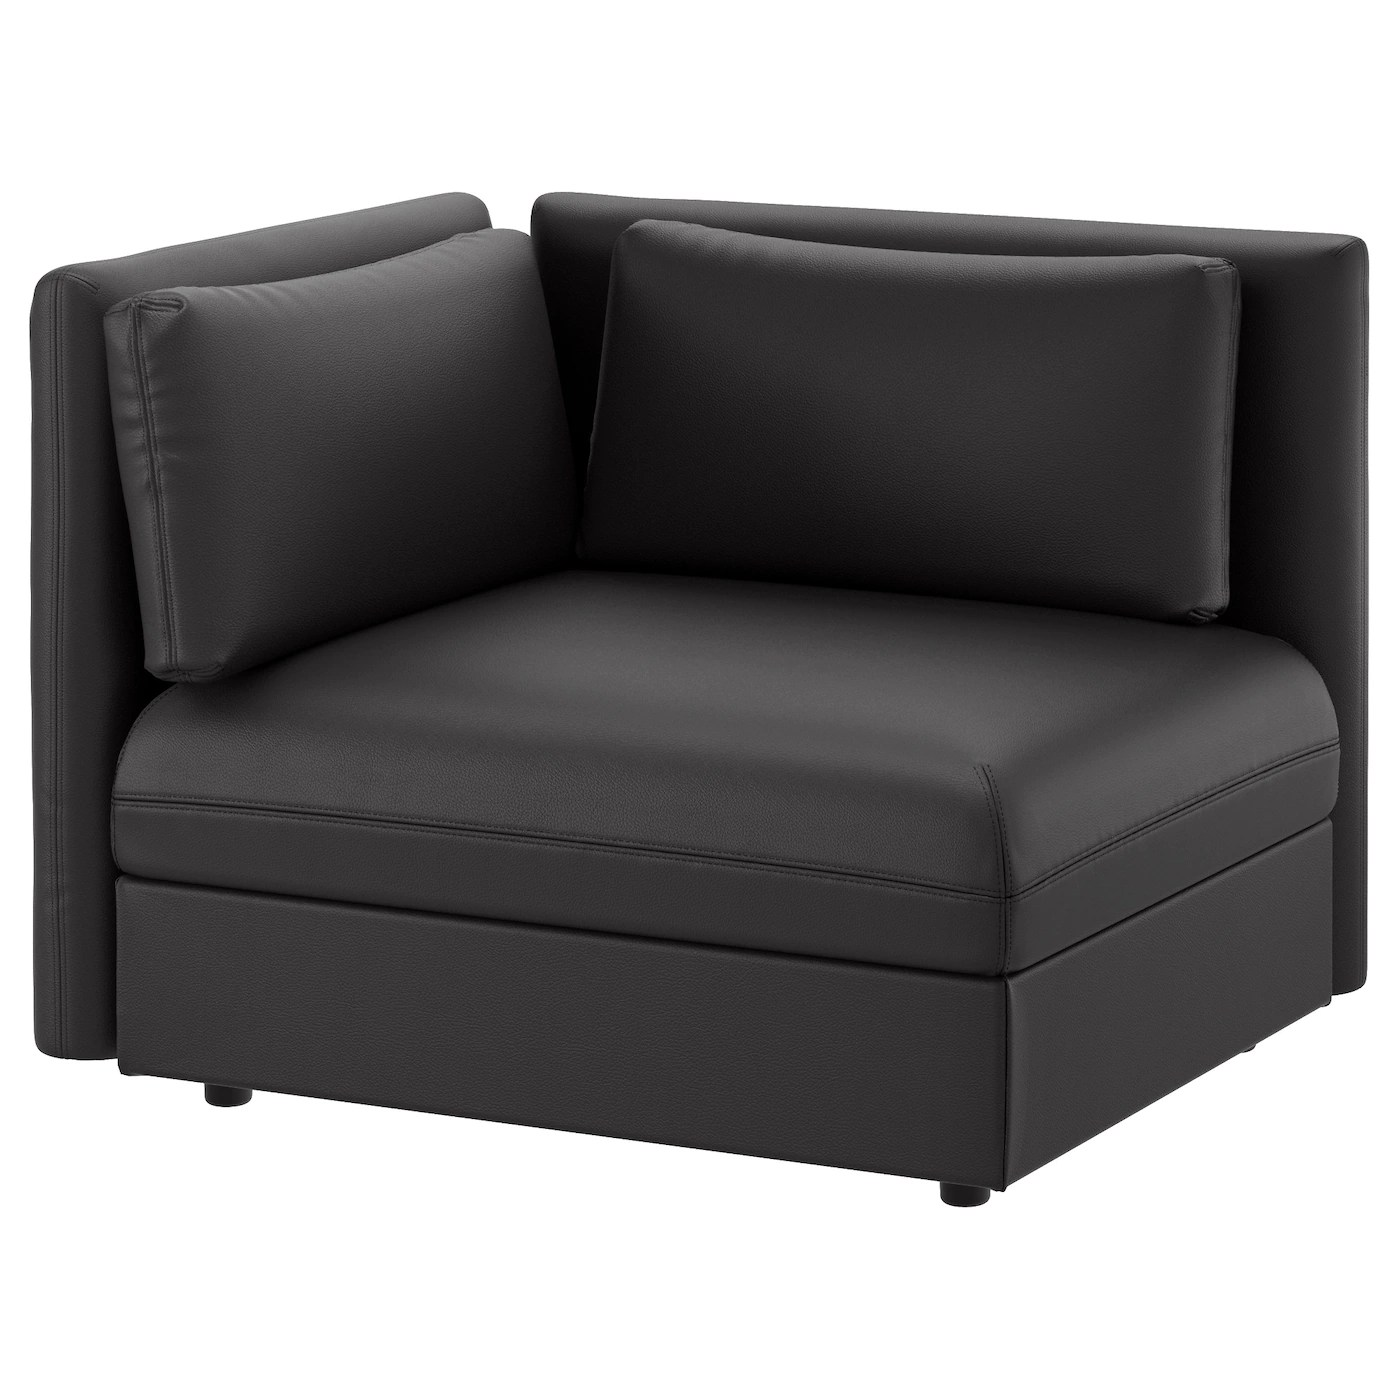 modular sofas ireland sofa beds chicago il and sectional ikea